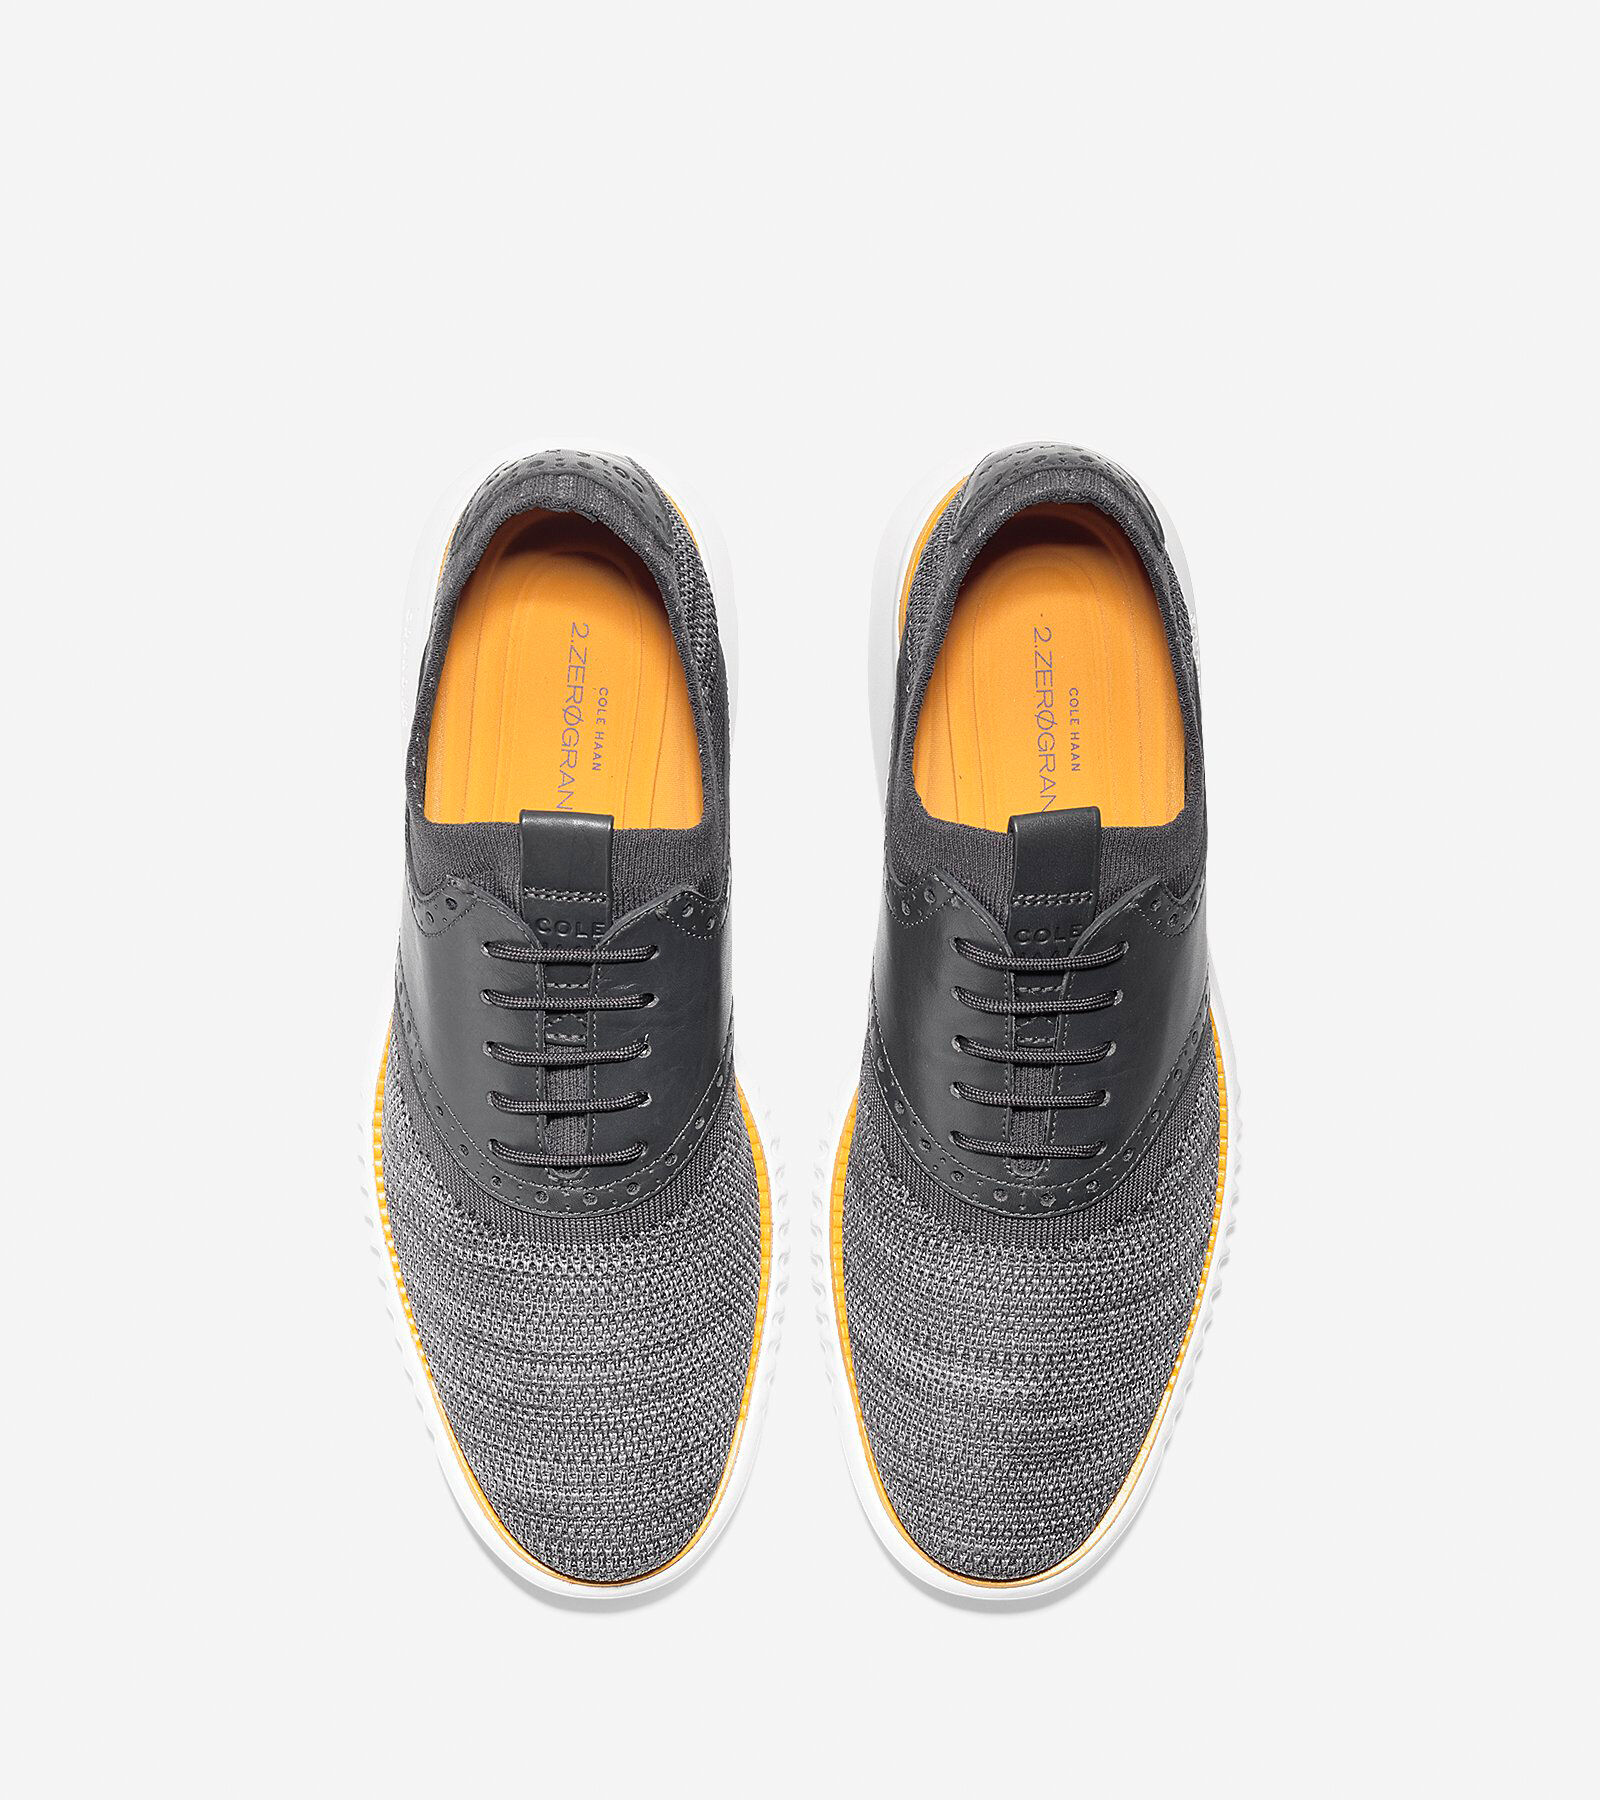 2.Zerogrand Packable Saddle-Knit Cole Haan BkwiyWJ